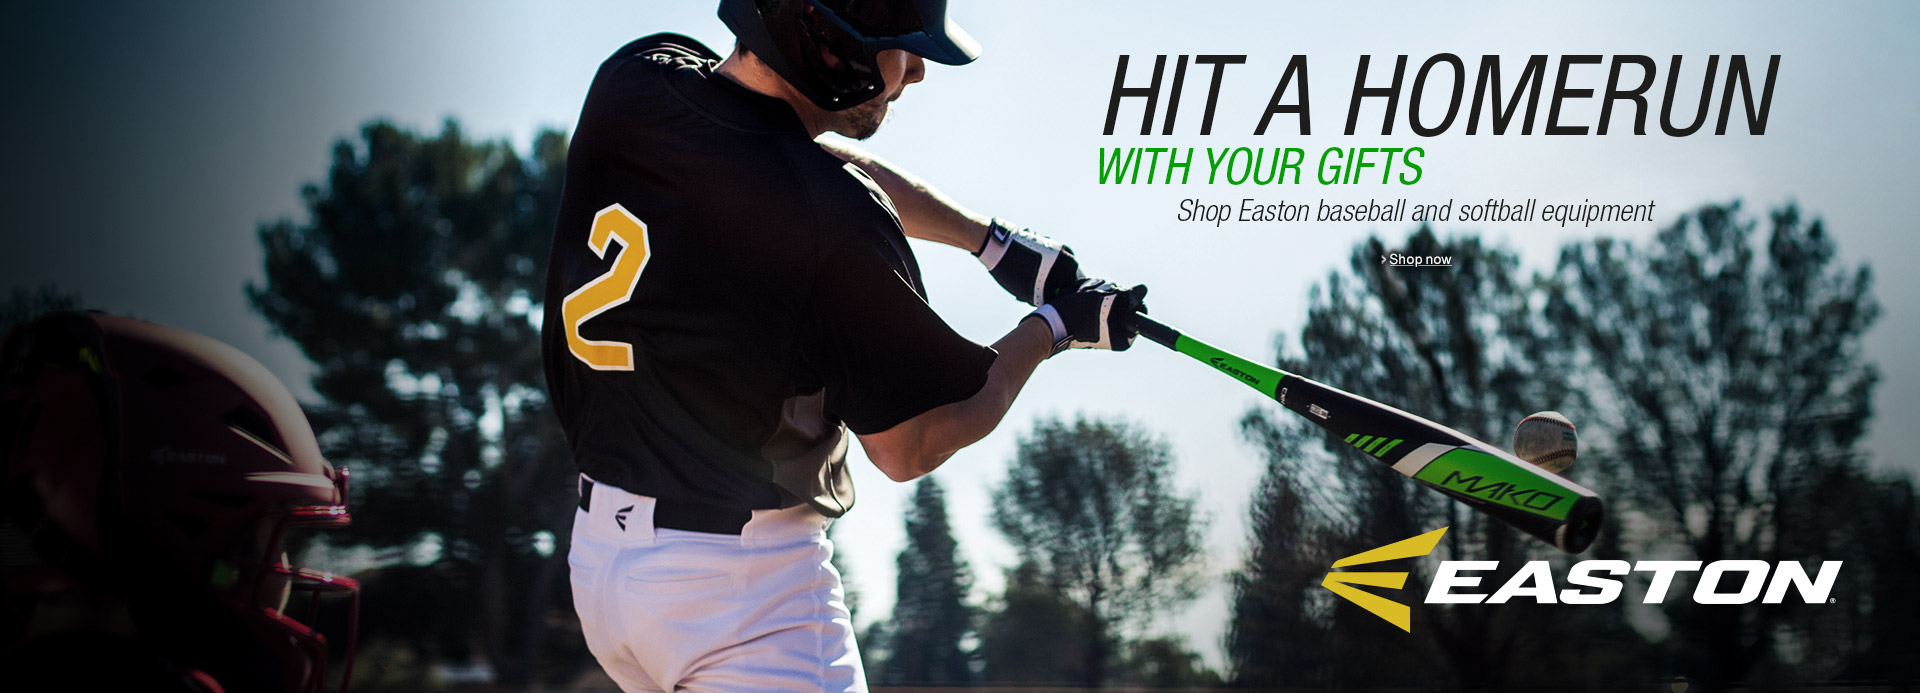 Hit a Home Run with Easton Gifts